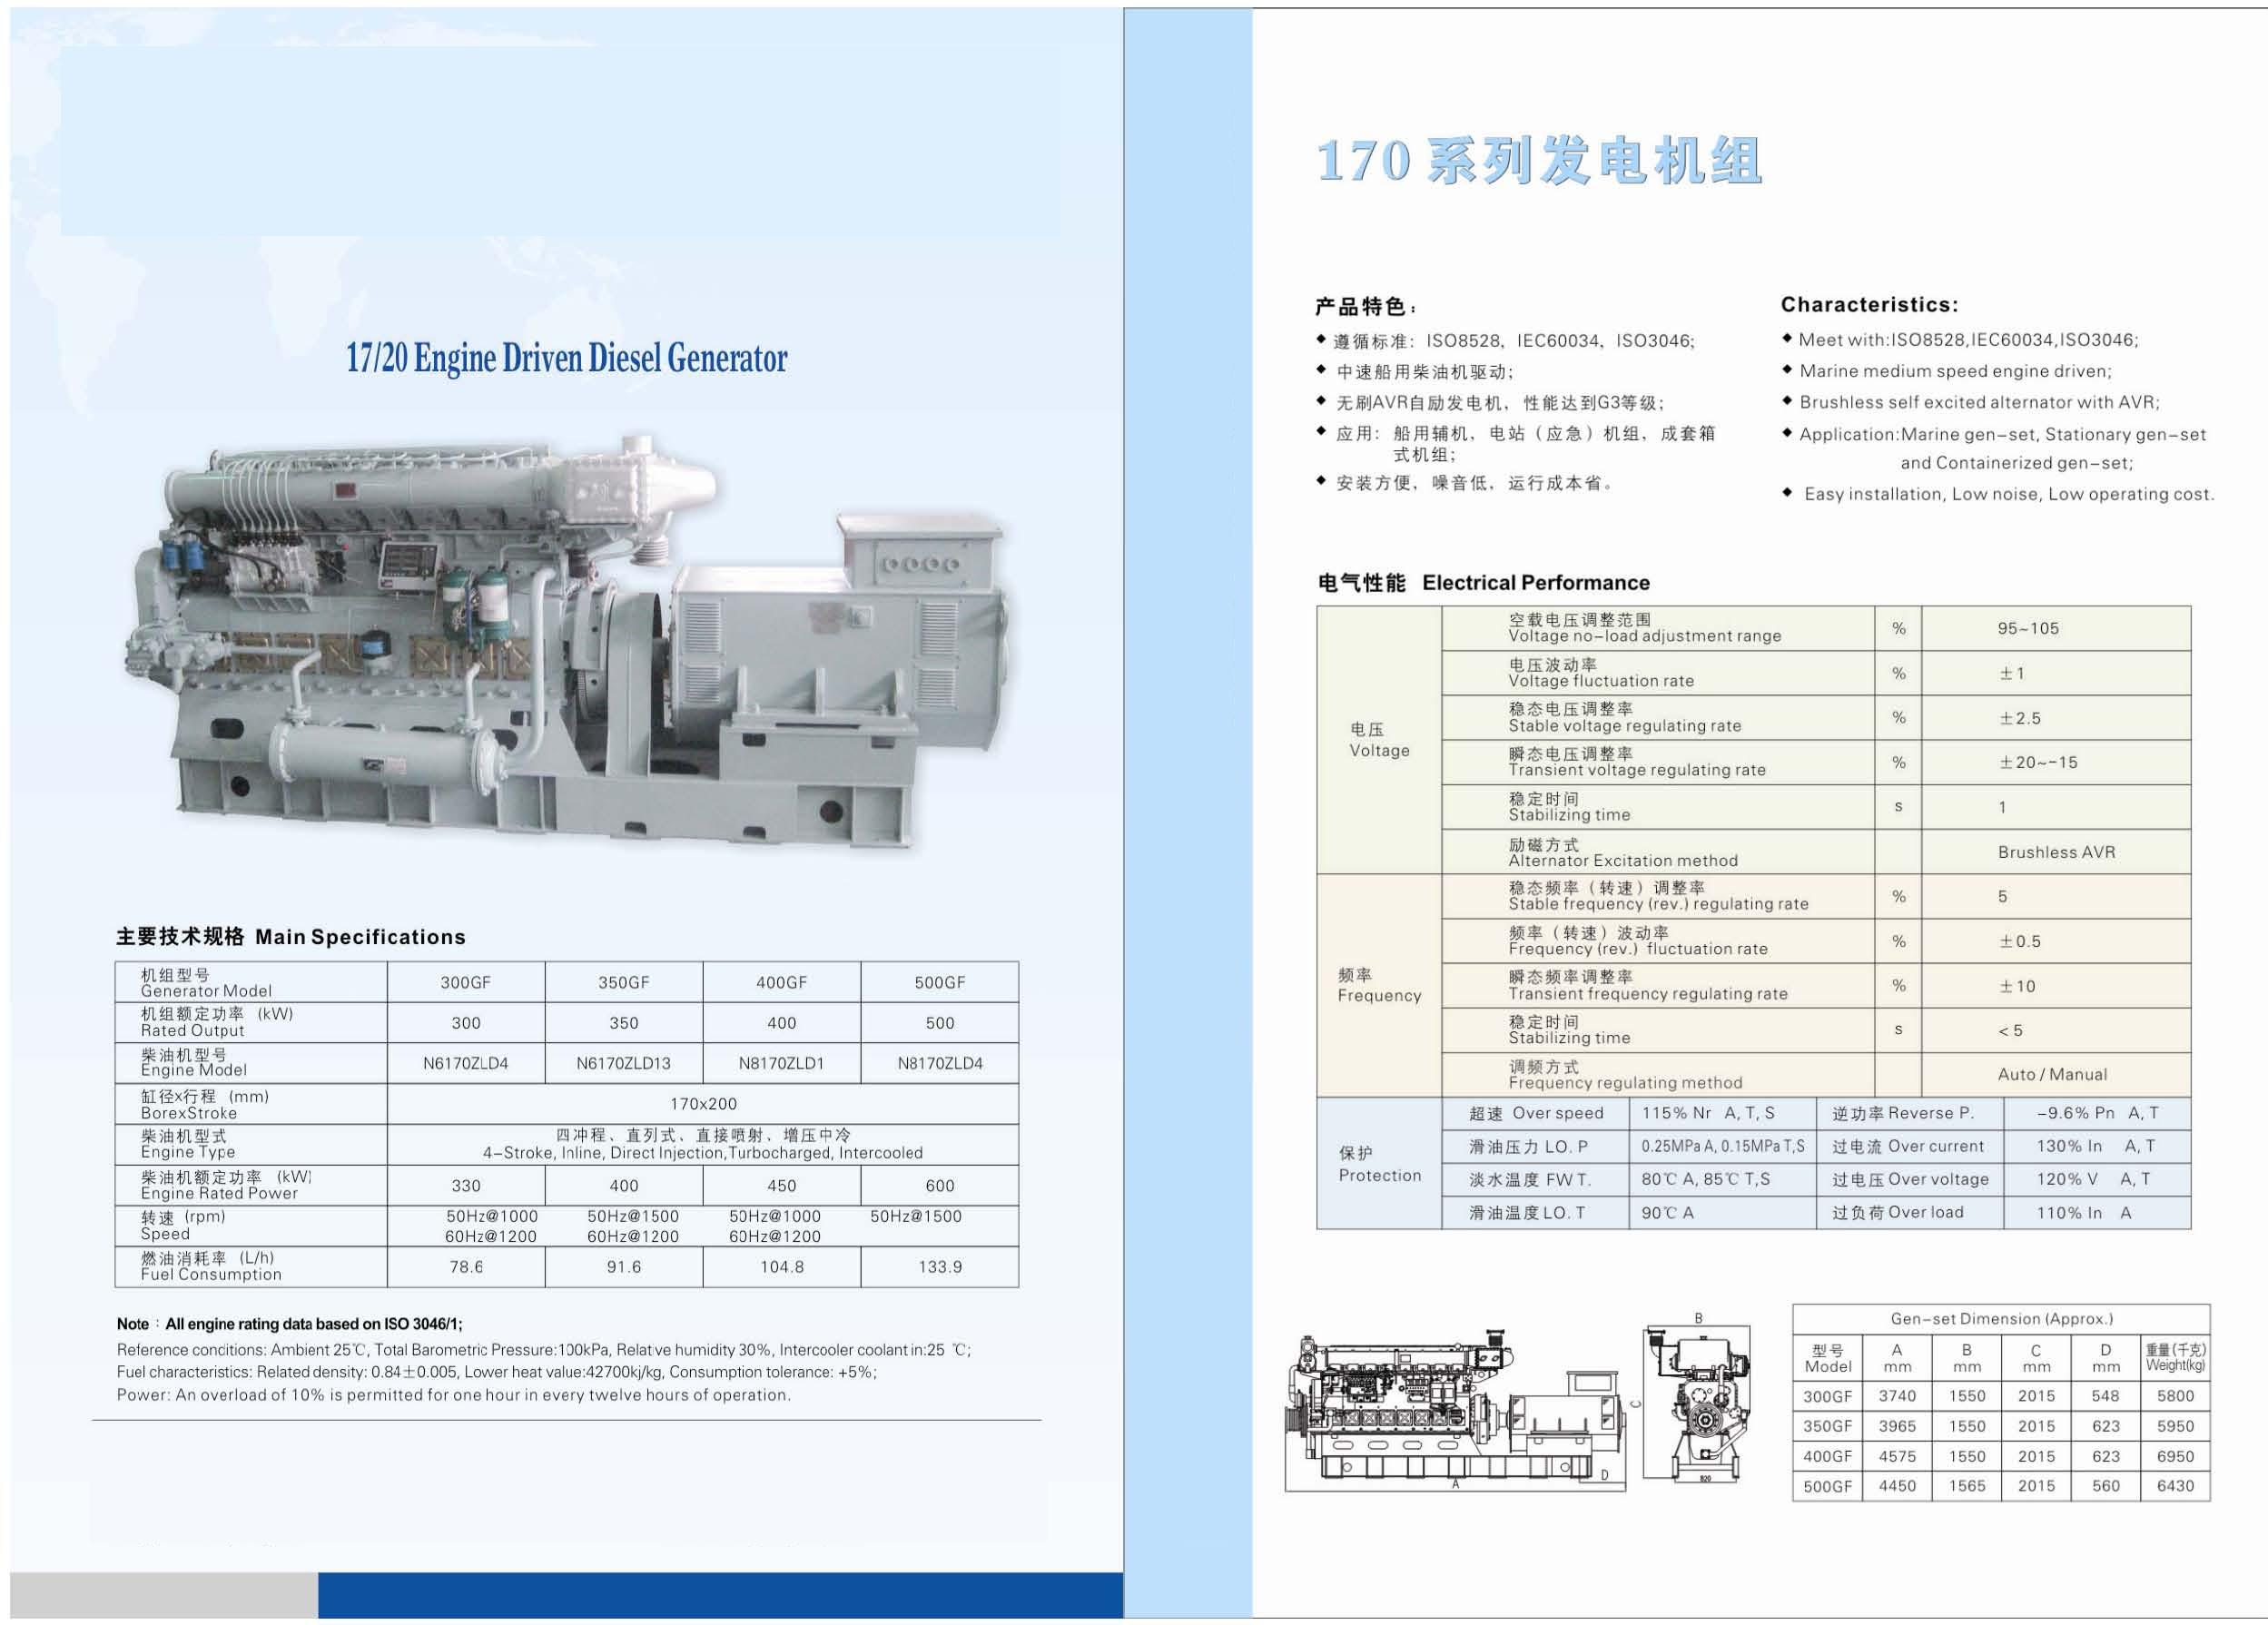 Hfo Diesel Generator Sets Running On Biodiesel Waste Oil Rubber Power Plant Diagram For More As Mtu Cummins Perkins Doosan Or Man Please Click